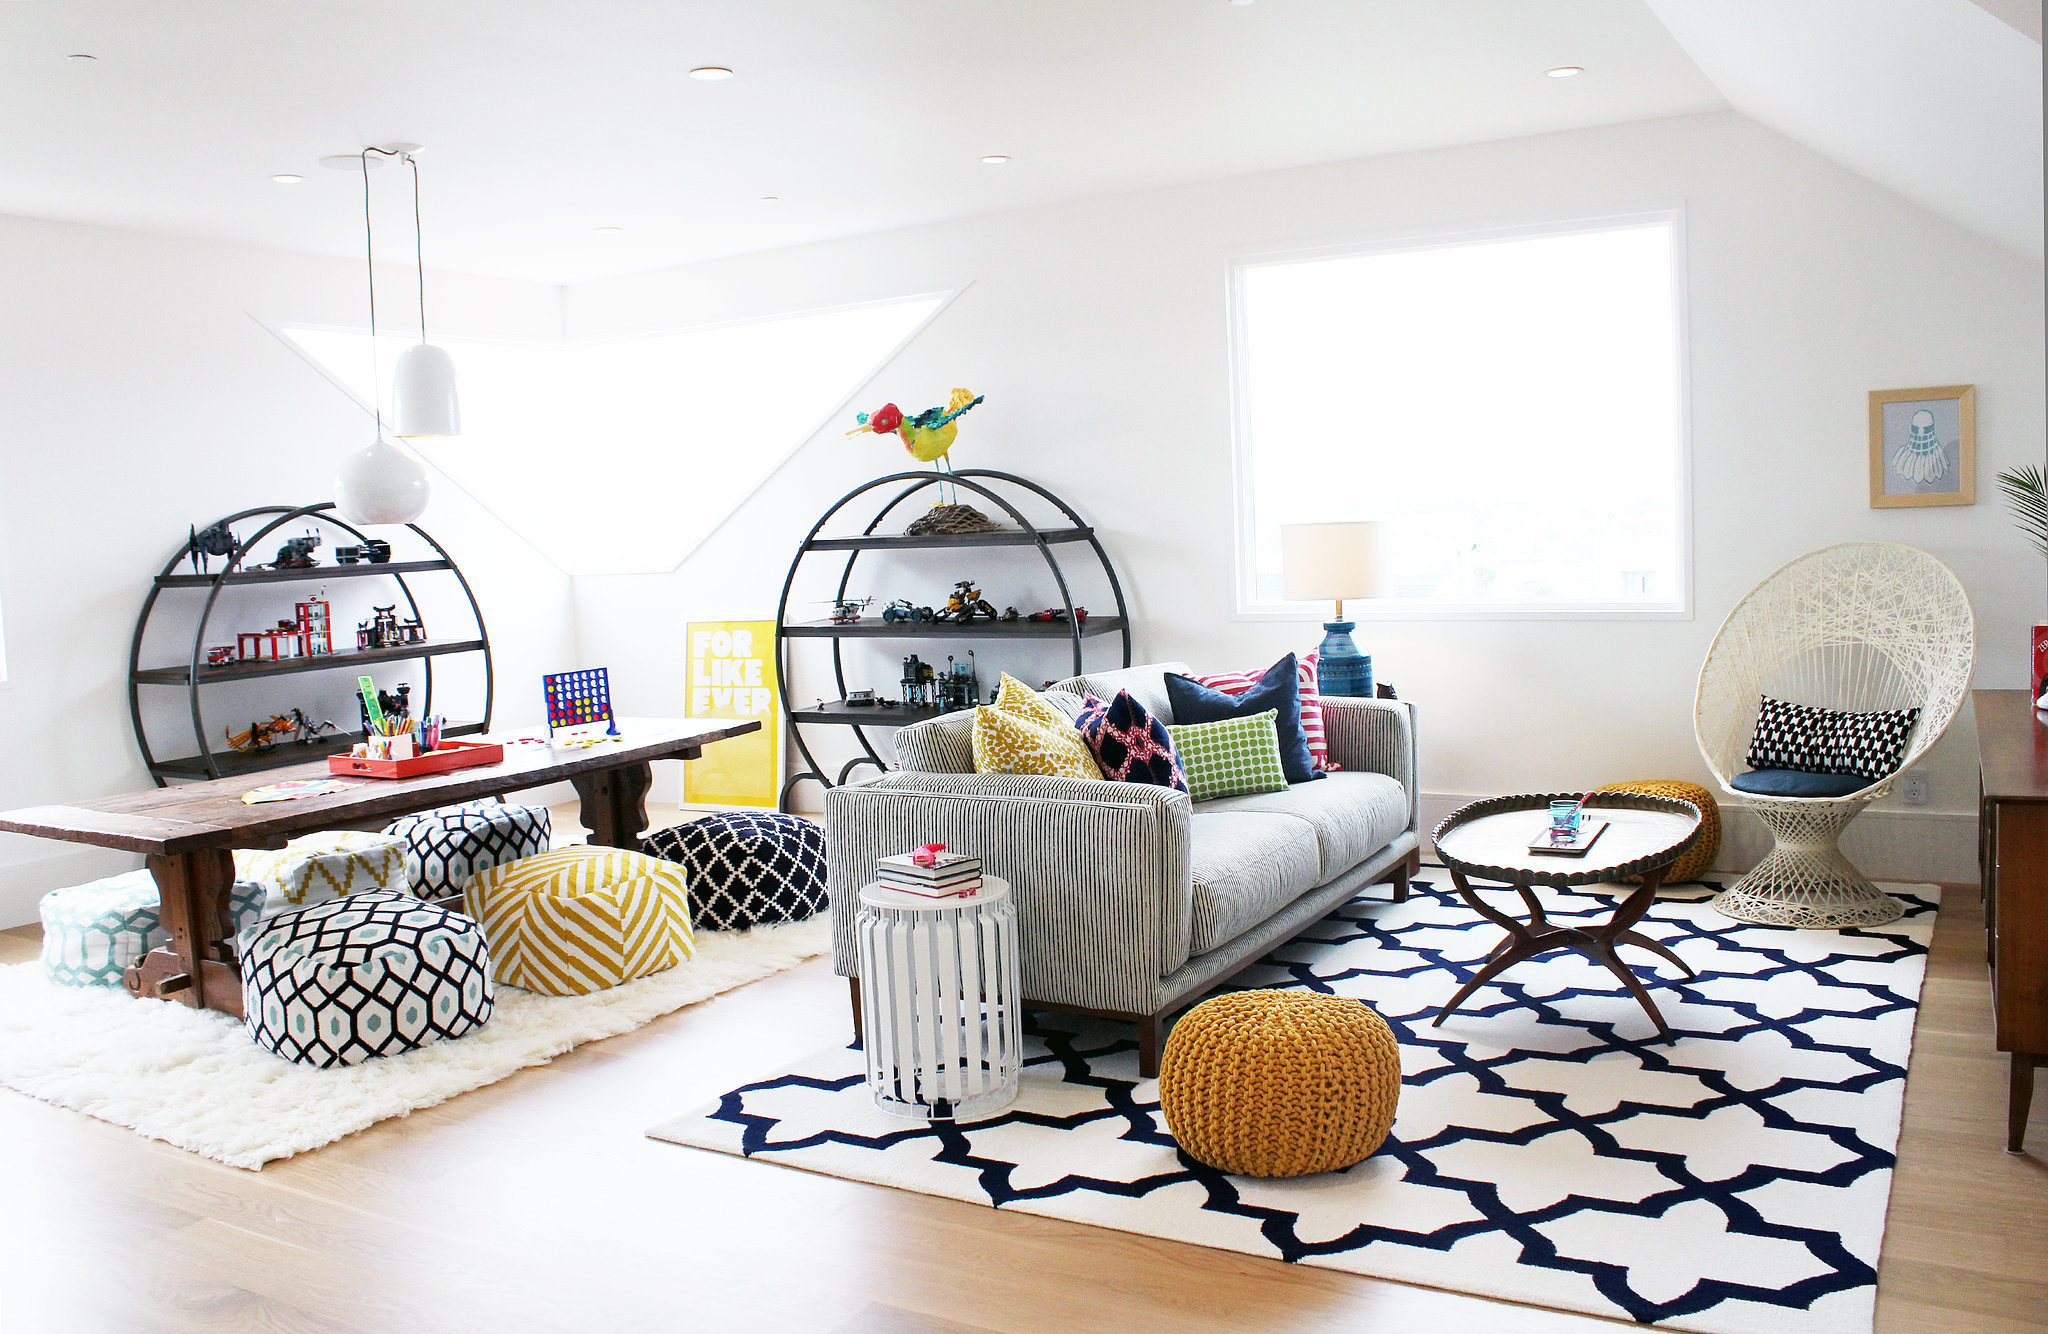 Creative Ways to Decorate Your Home at Low Cost